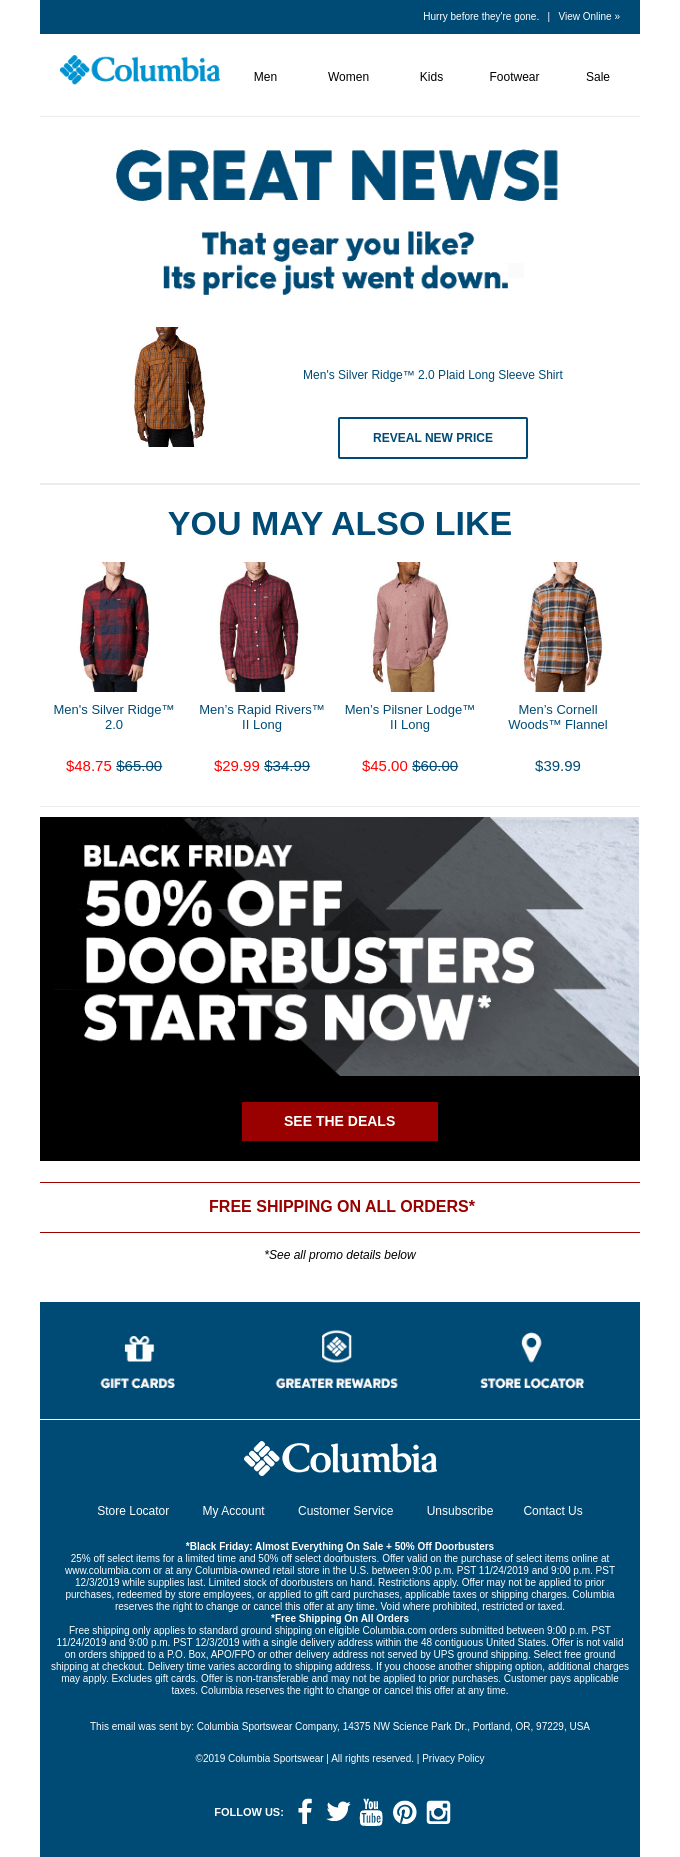 A good example of an abandoned cart email